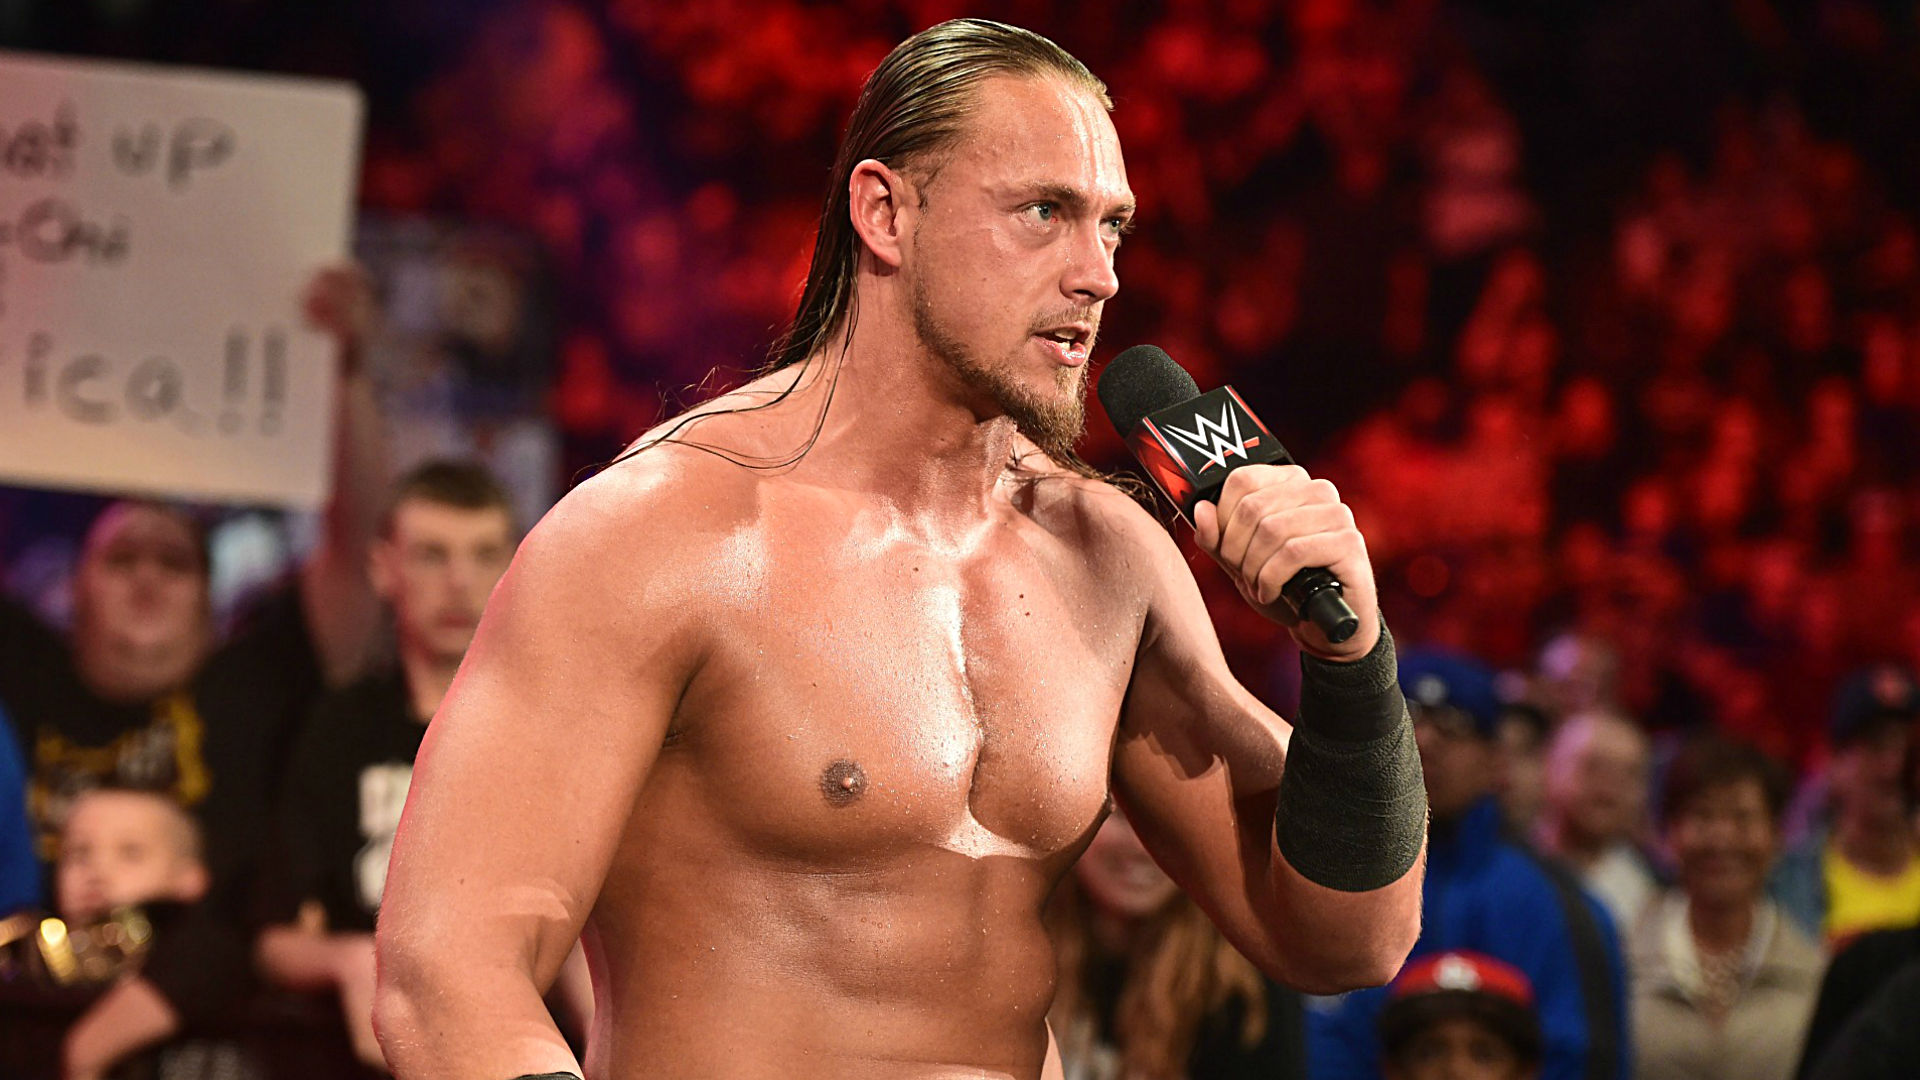 Why Was Big Cass Fired From WWE?